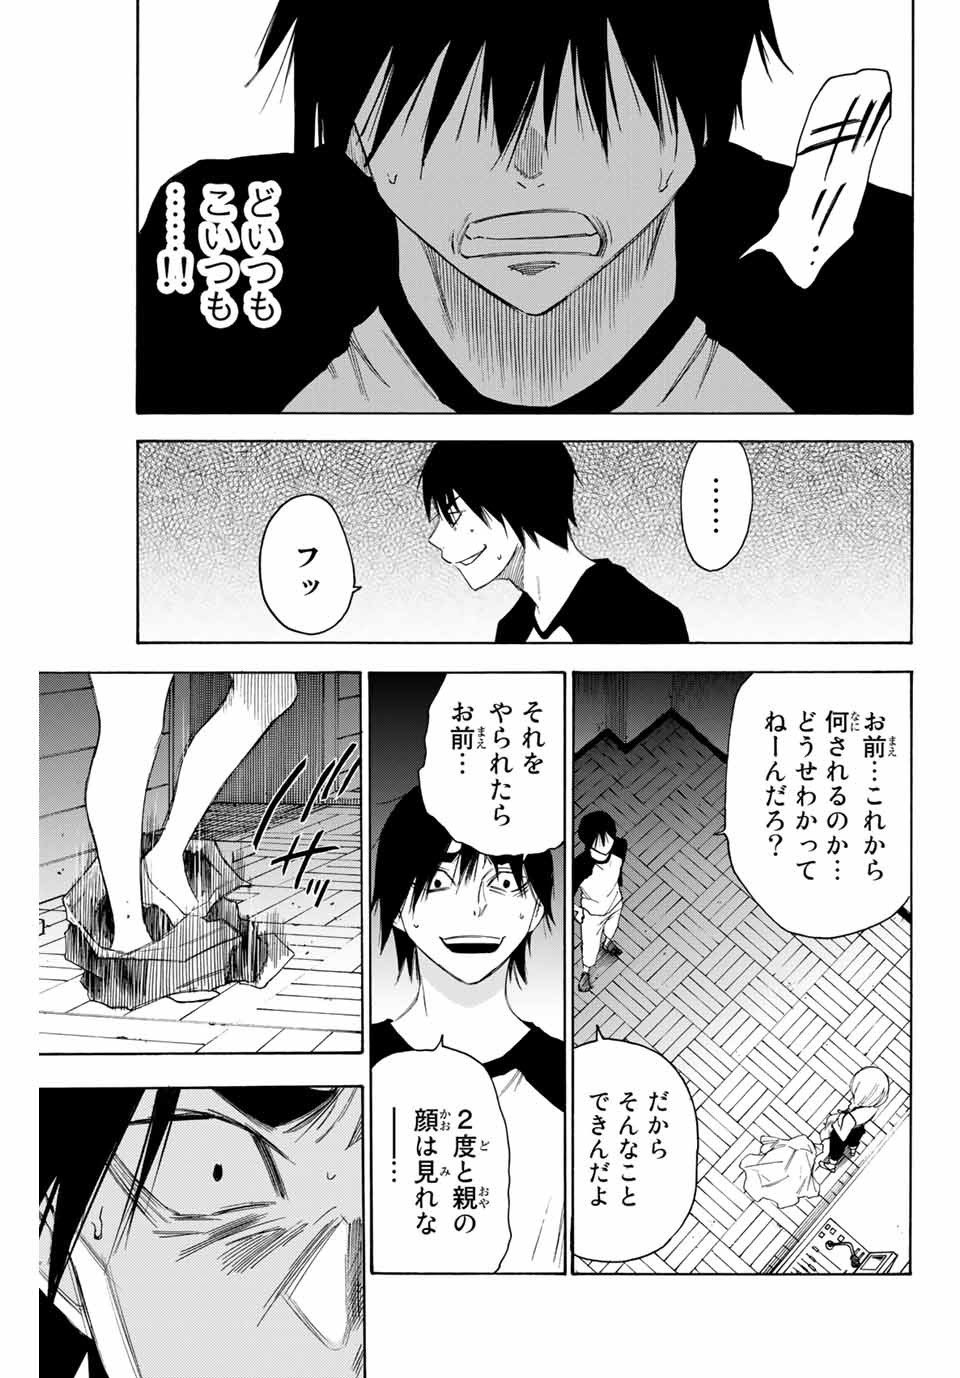 Manga Raw Nare no hate no Bokura Chapter 48